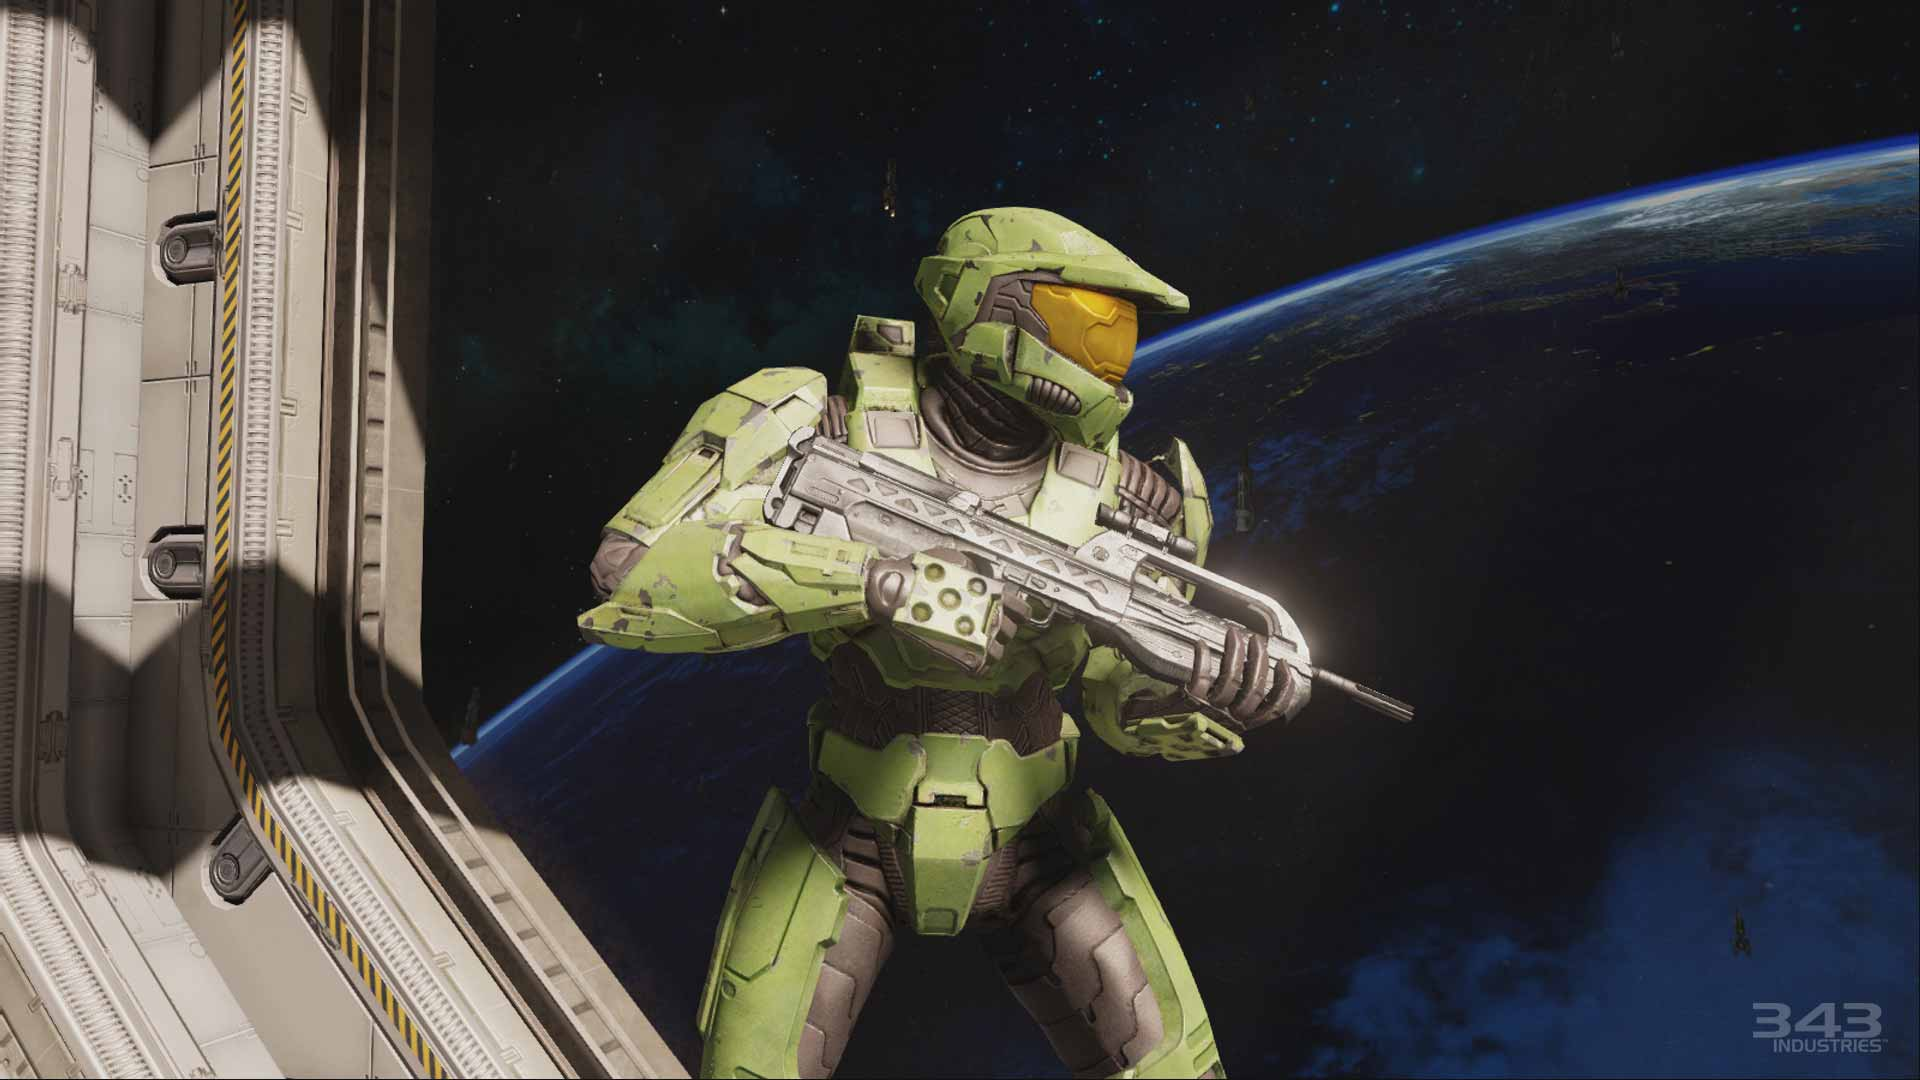 Halo Master Chief Collection 4k: Now is the Time